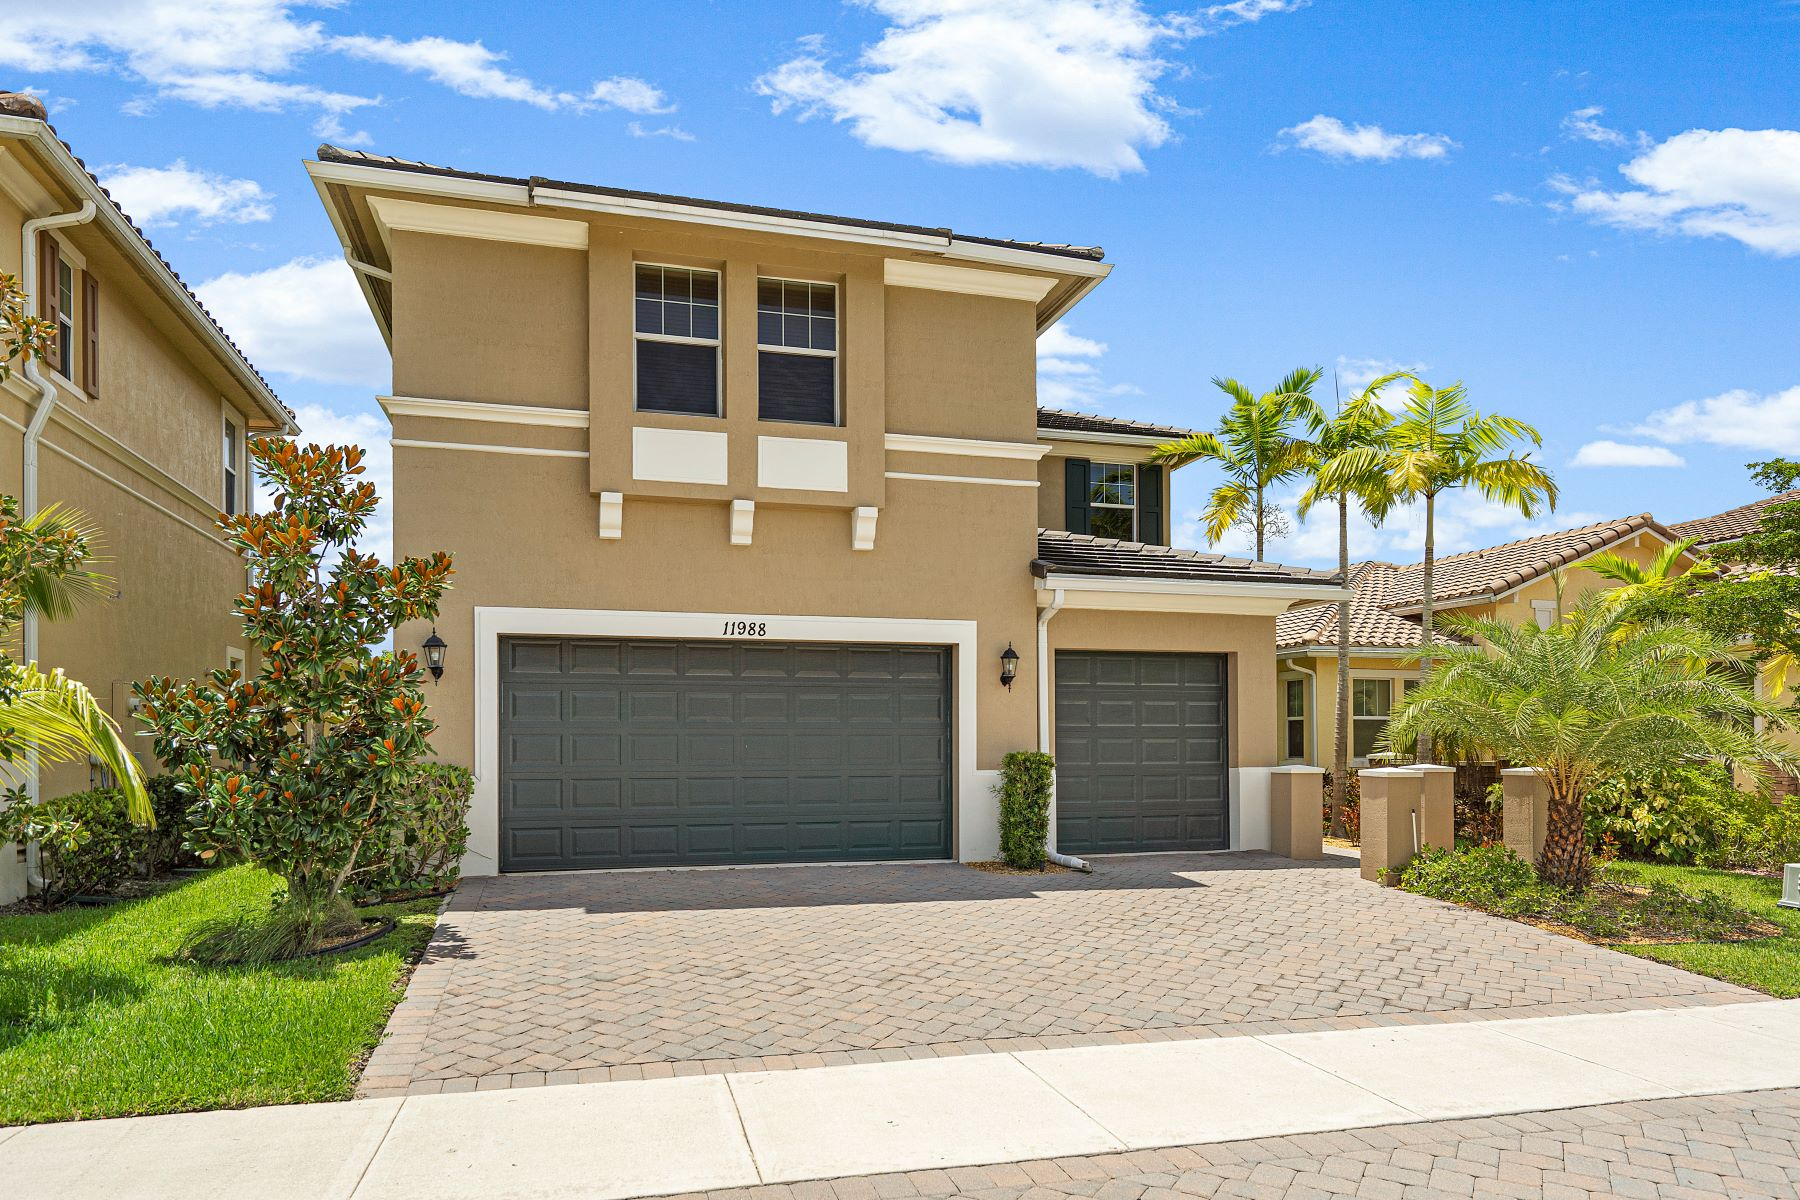 Single Family Homes for Sale at Parkland, Florida 33067 United States